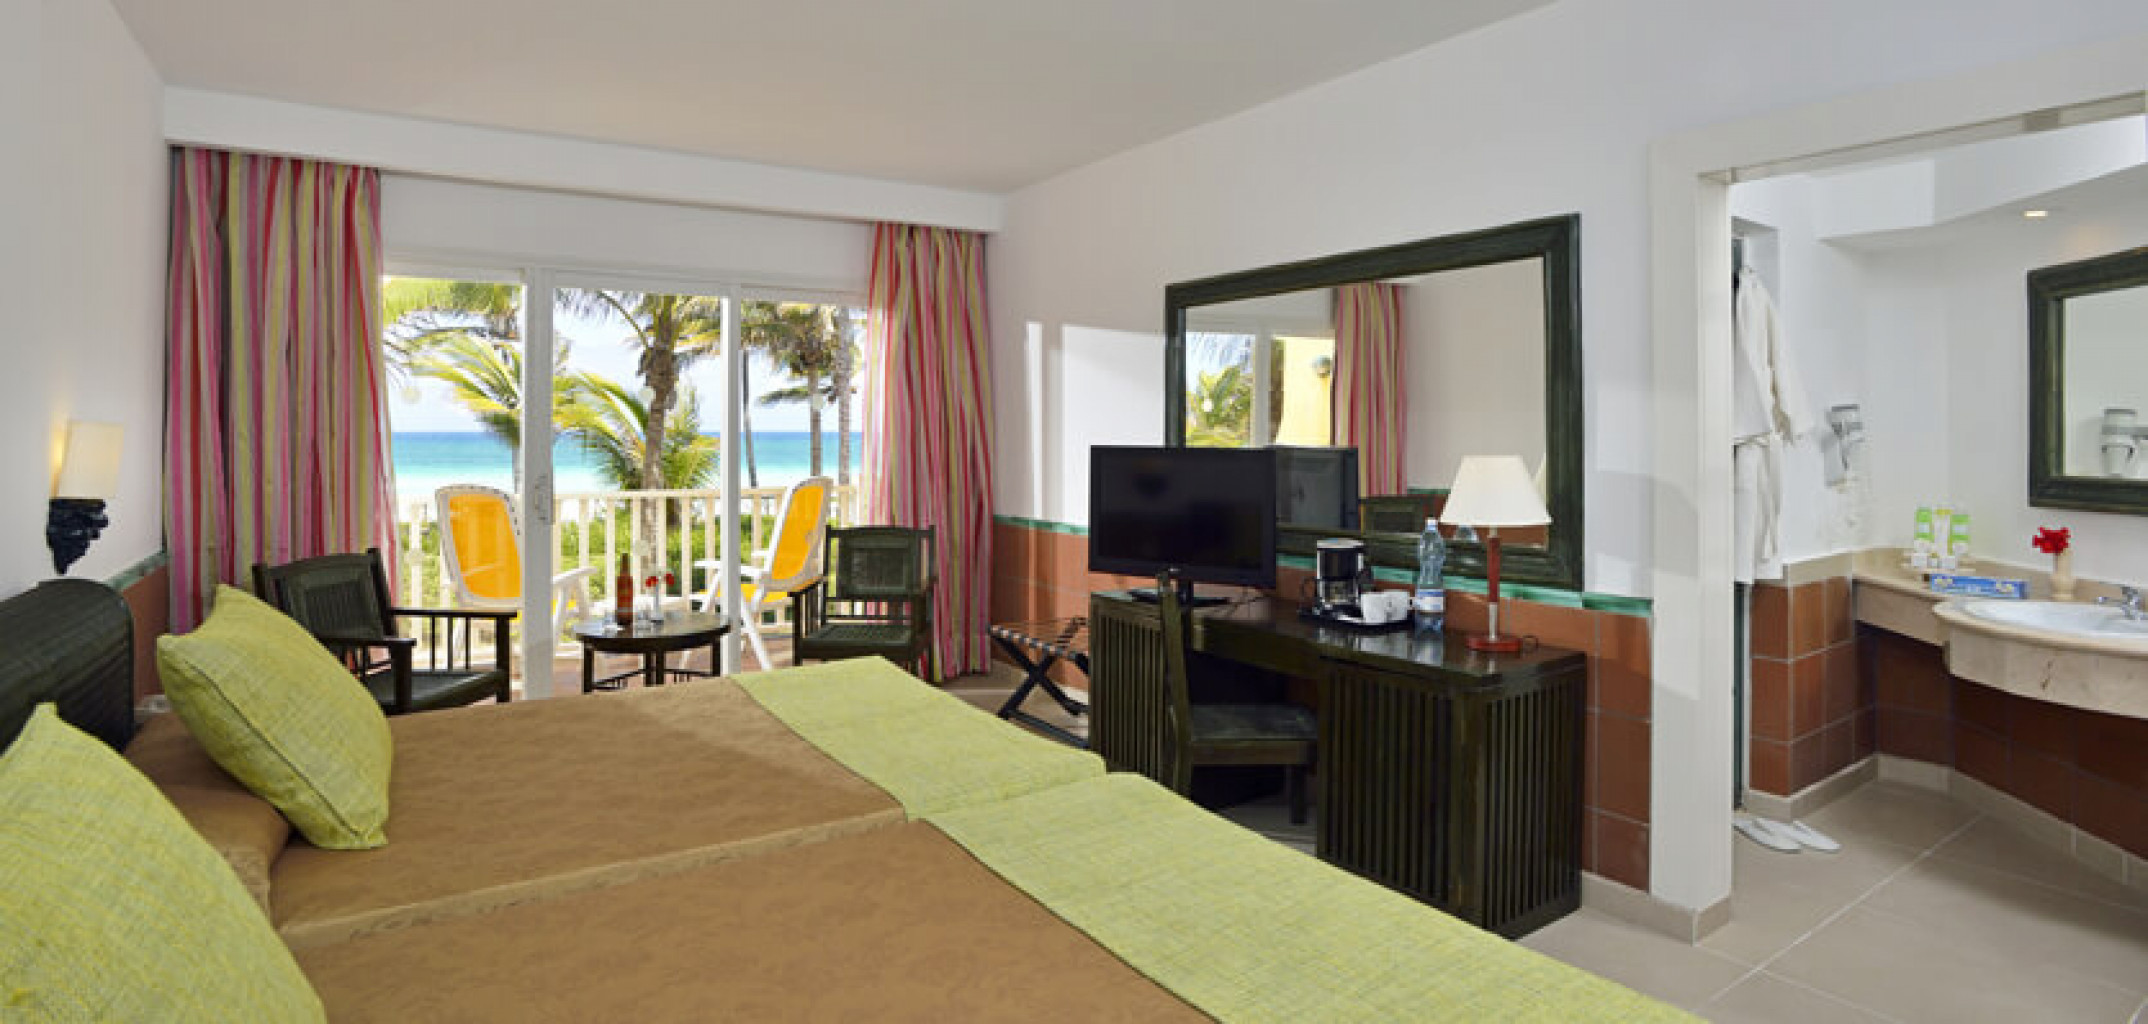 TRYP Cayo Coco - Chambre double - 1